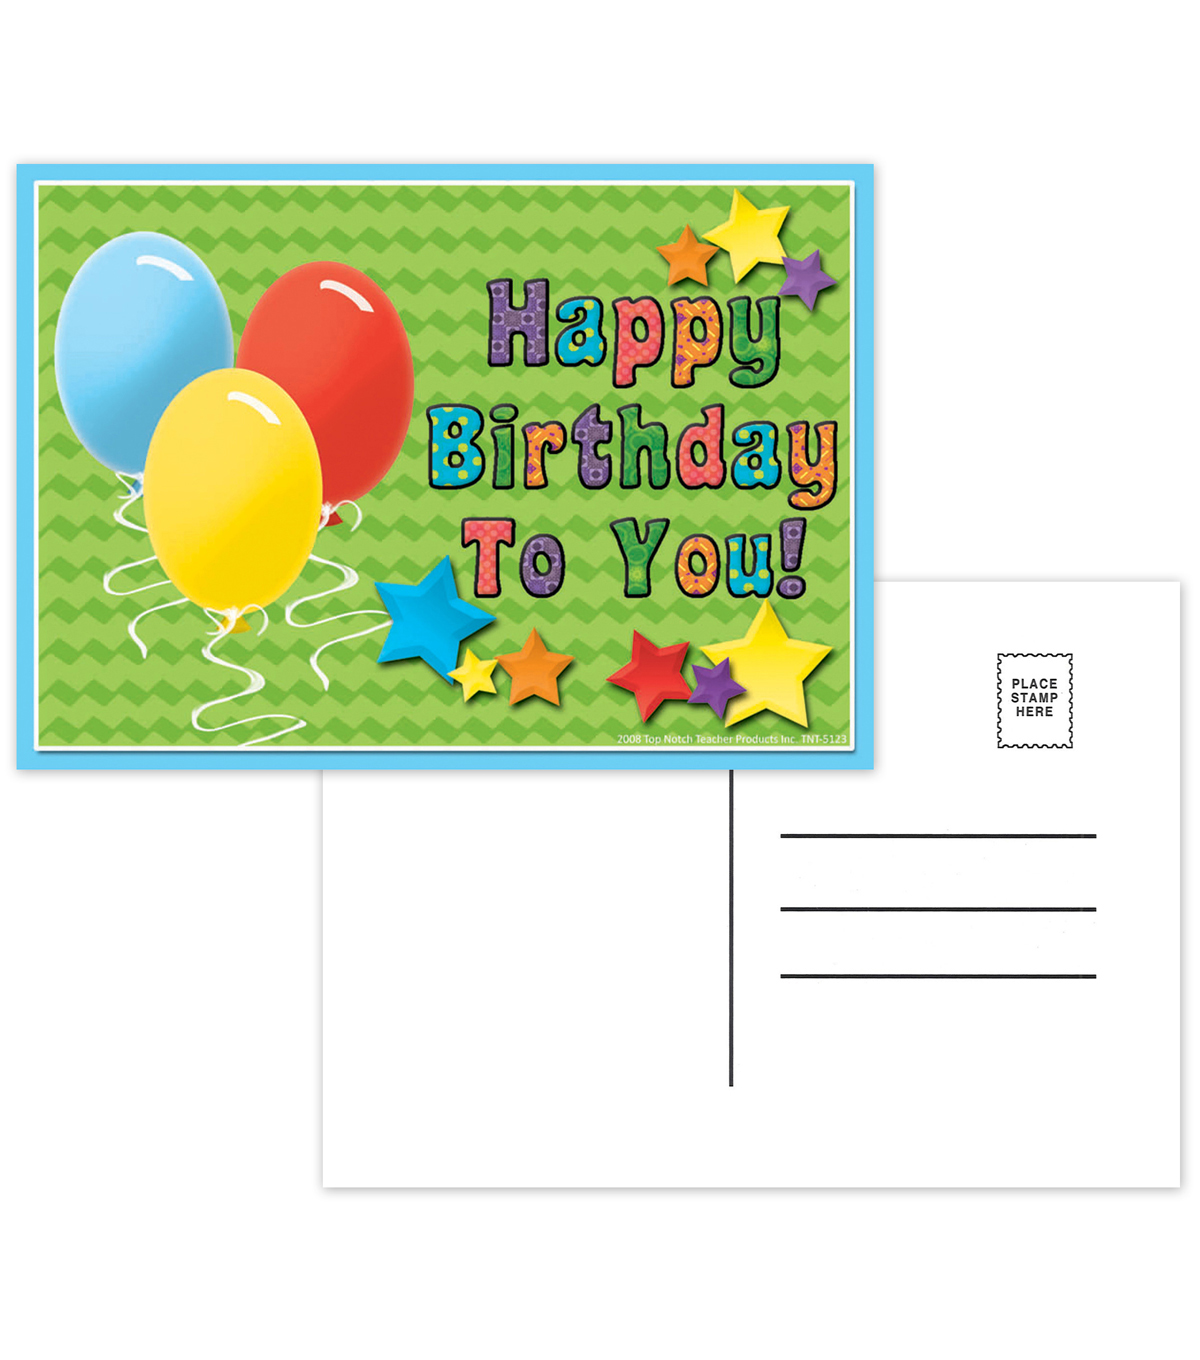 Happy Birthday to You Postcards, 30 Per Pack, 12 Packs